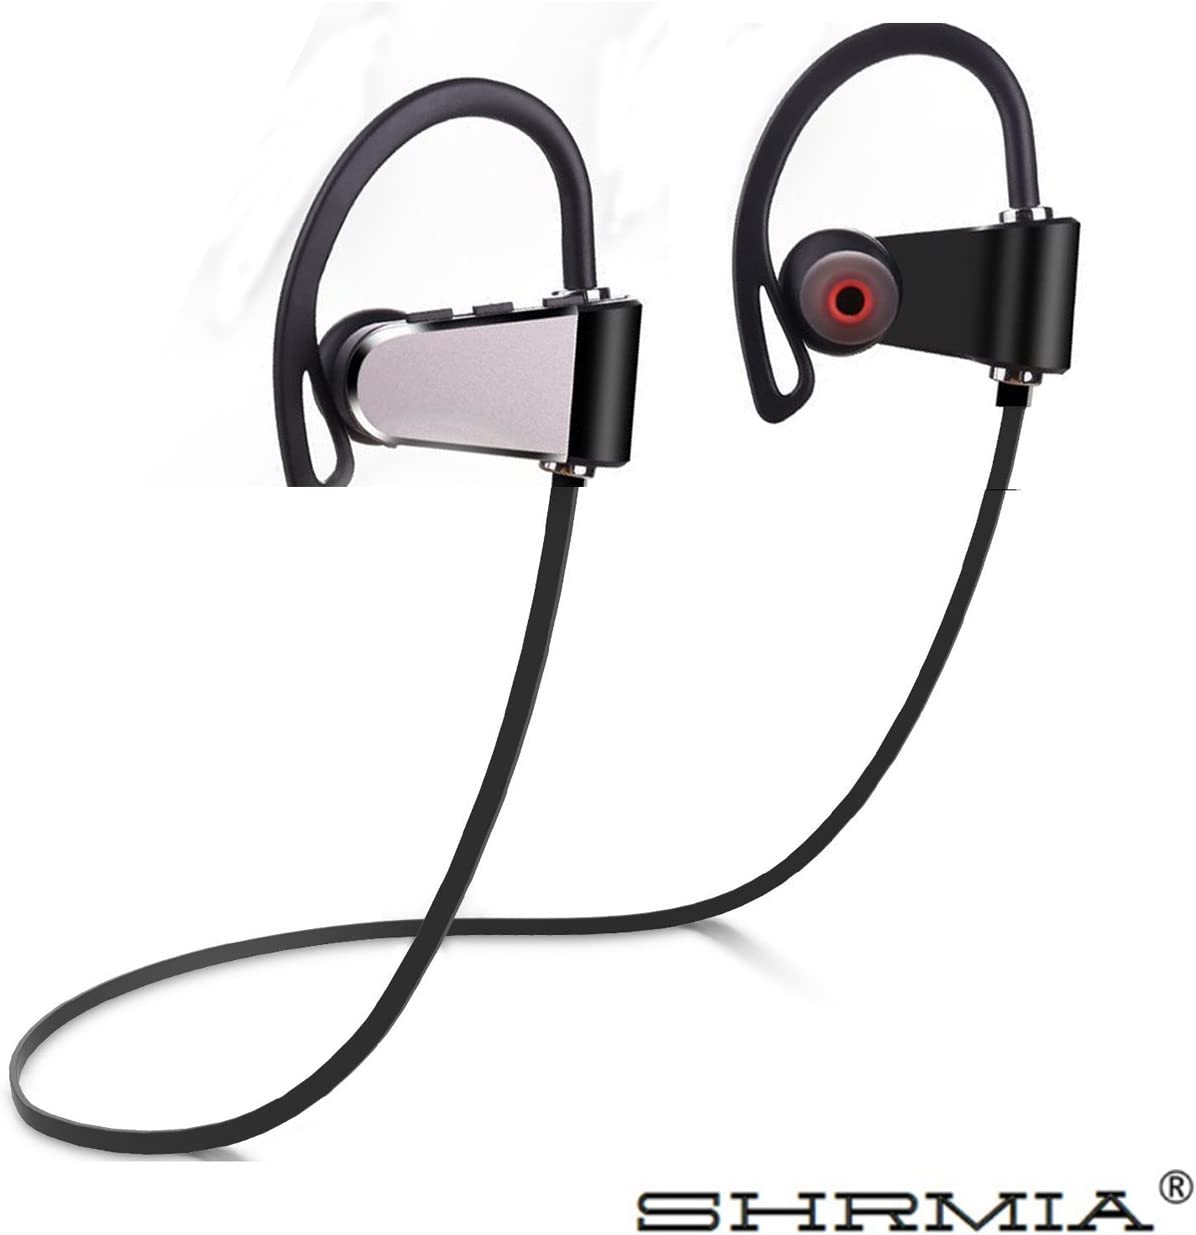 SHRMIA Bluetooth Headphones – Ergonomic Design Wireless Headphones - Wireless Sport w/Mic - IPX7 Waterproof Rating - CVC 6.0 Noise Cancellotion for The Best Sound Quanlity - Affordable!